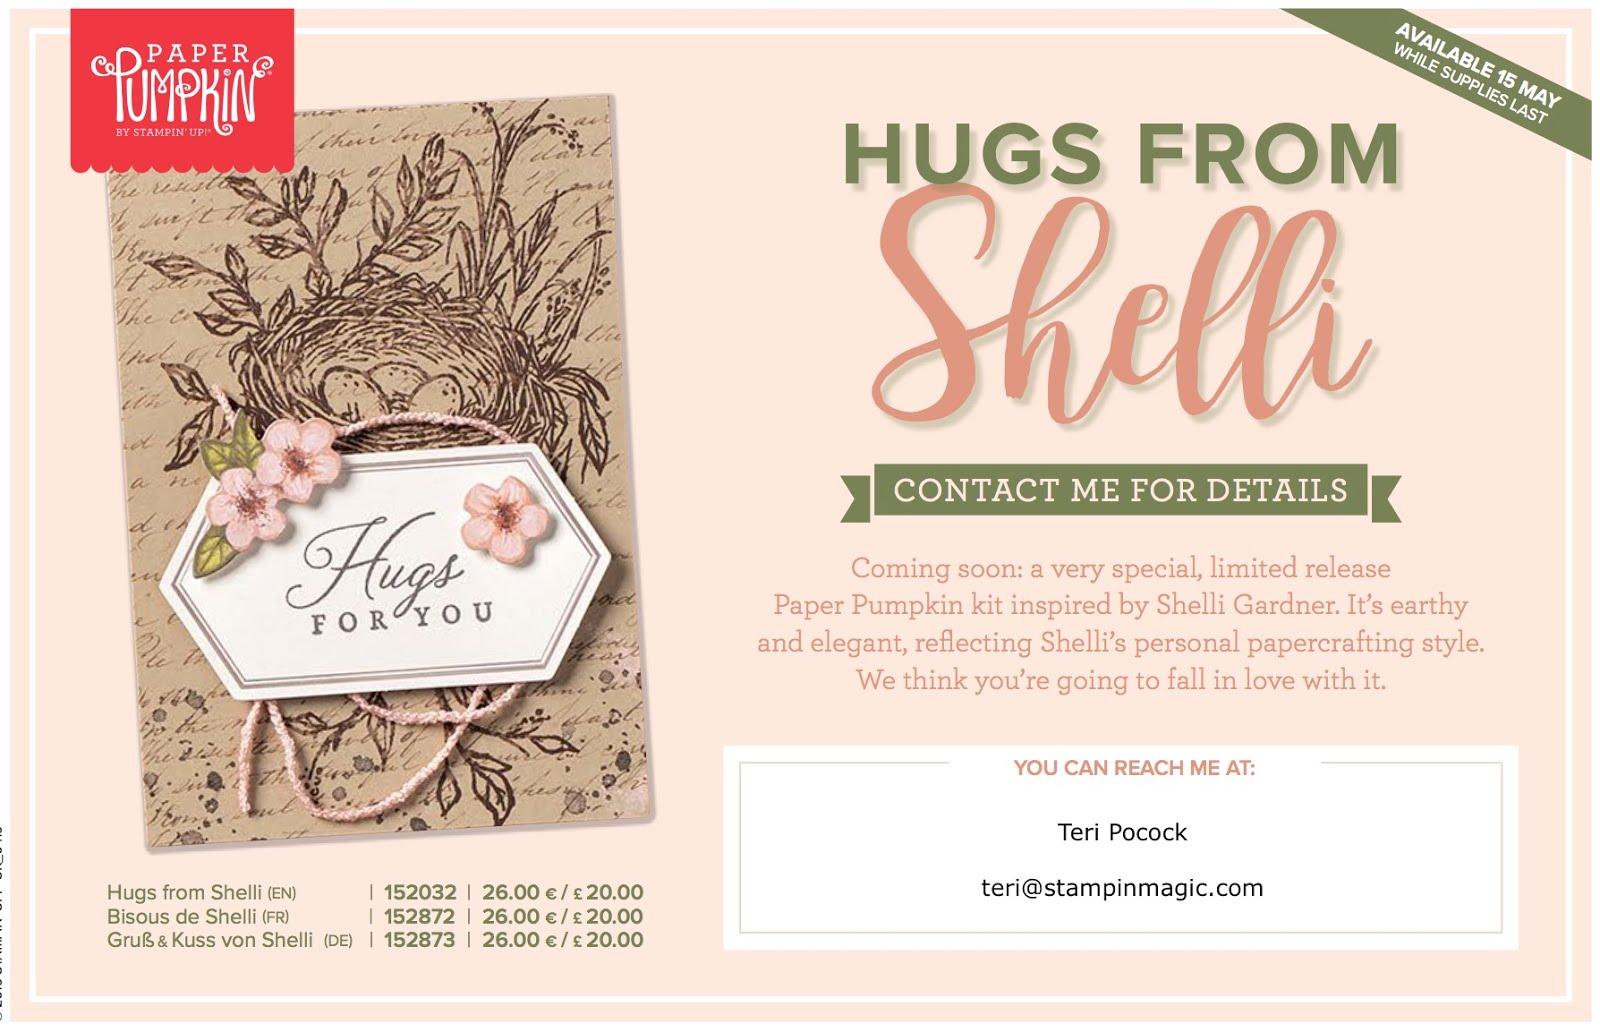 Hugs From Shelli - Paper Pumpkin Kit